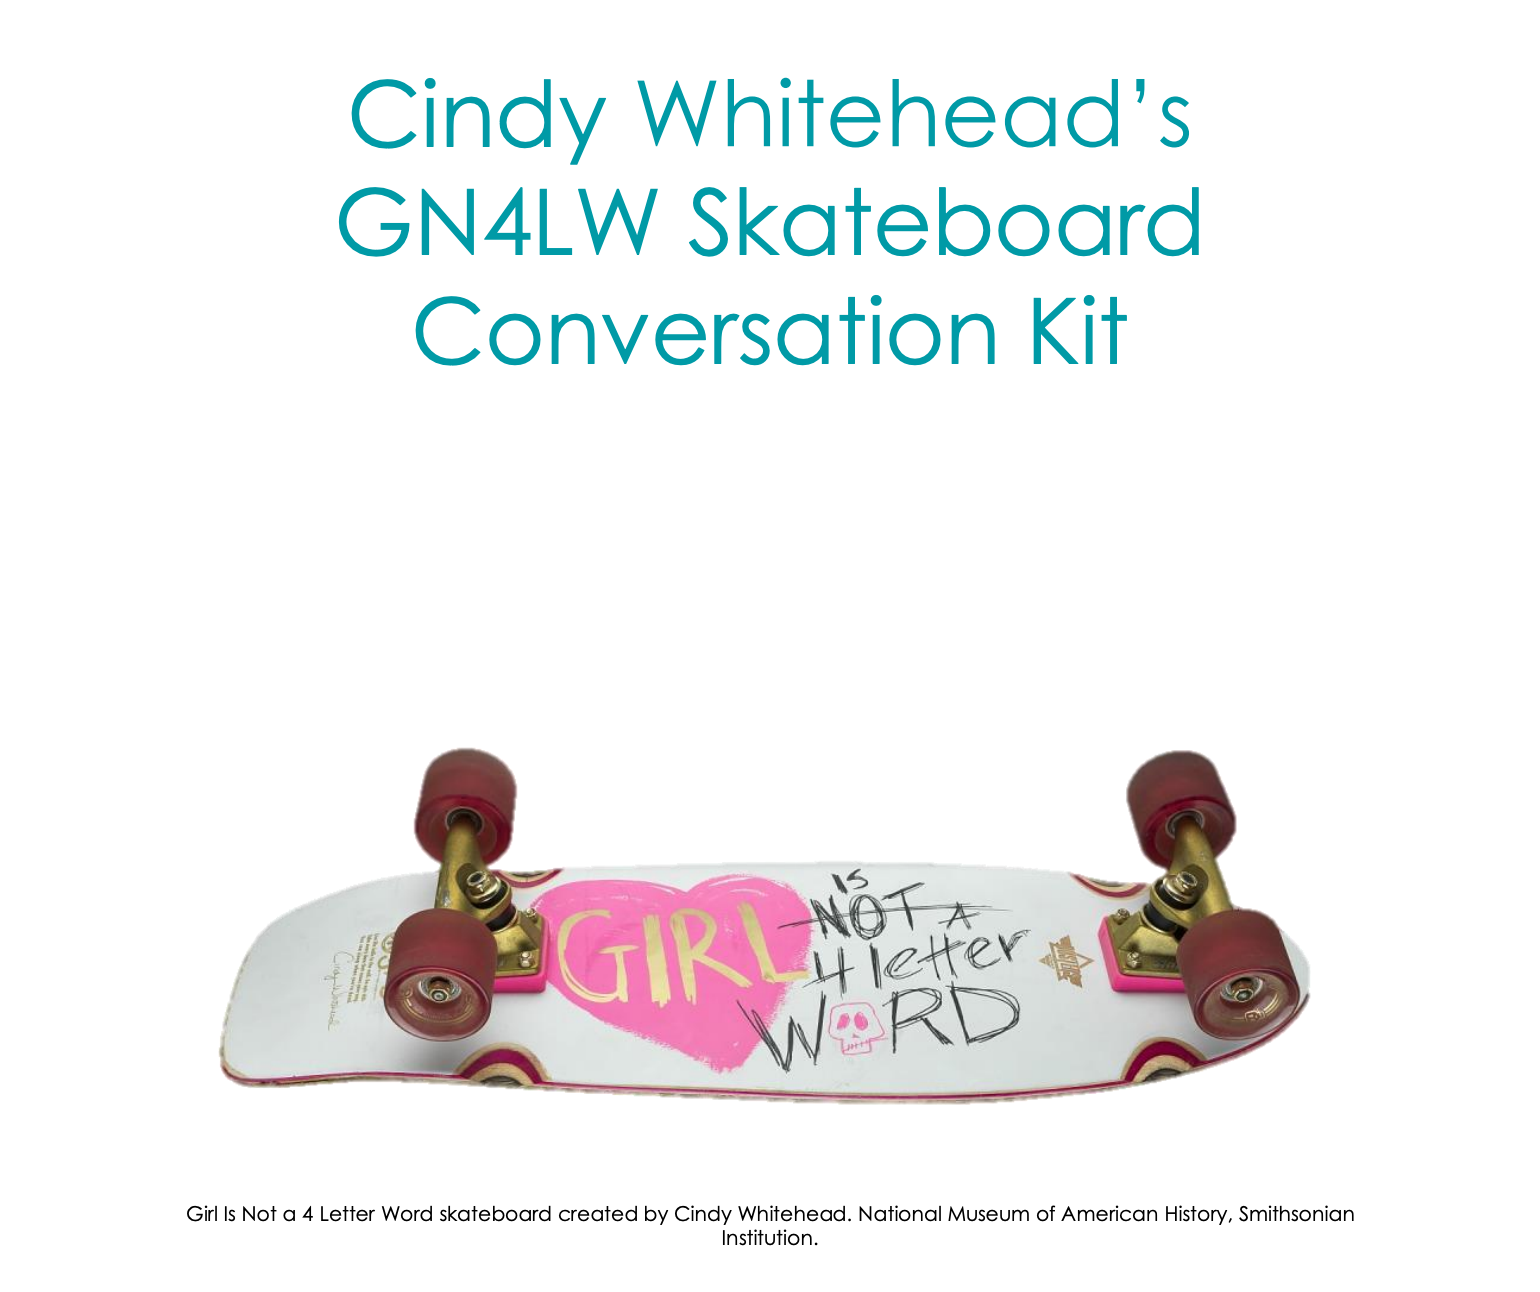 Cindy Whitehead's skateboard